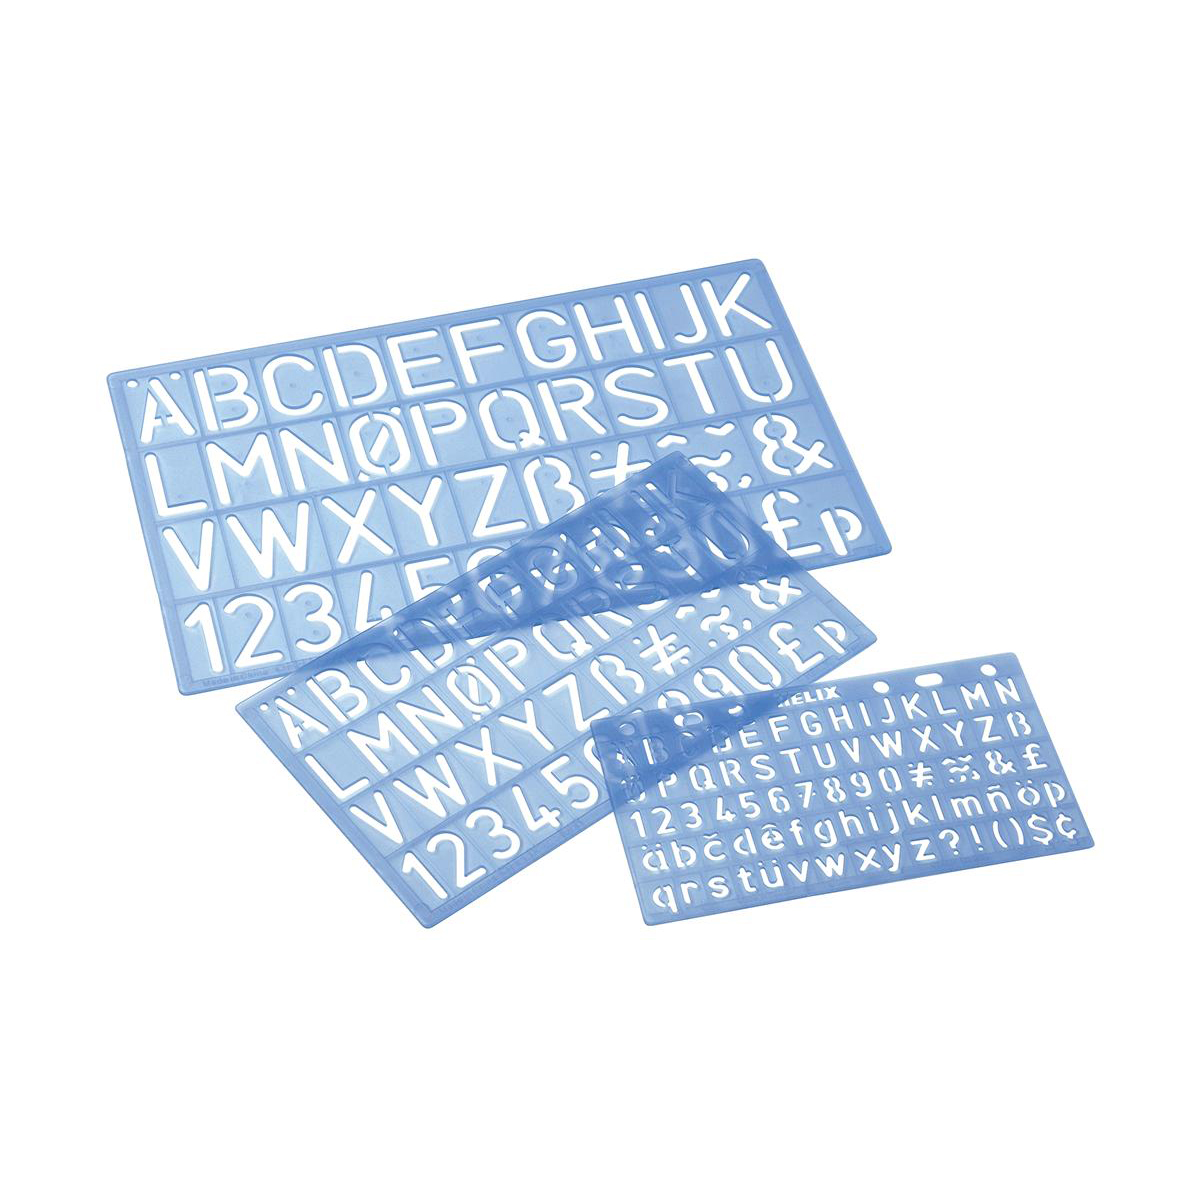 Stencil Pack of Letters/Numbers/Symbols with PVC Sleeve Various Sizes Blue Tint